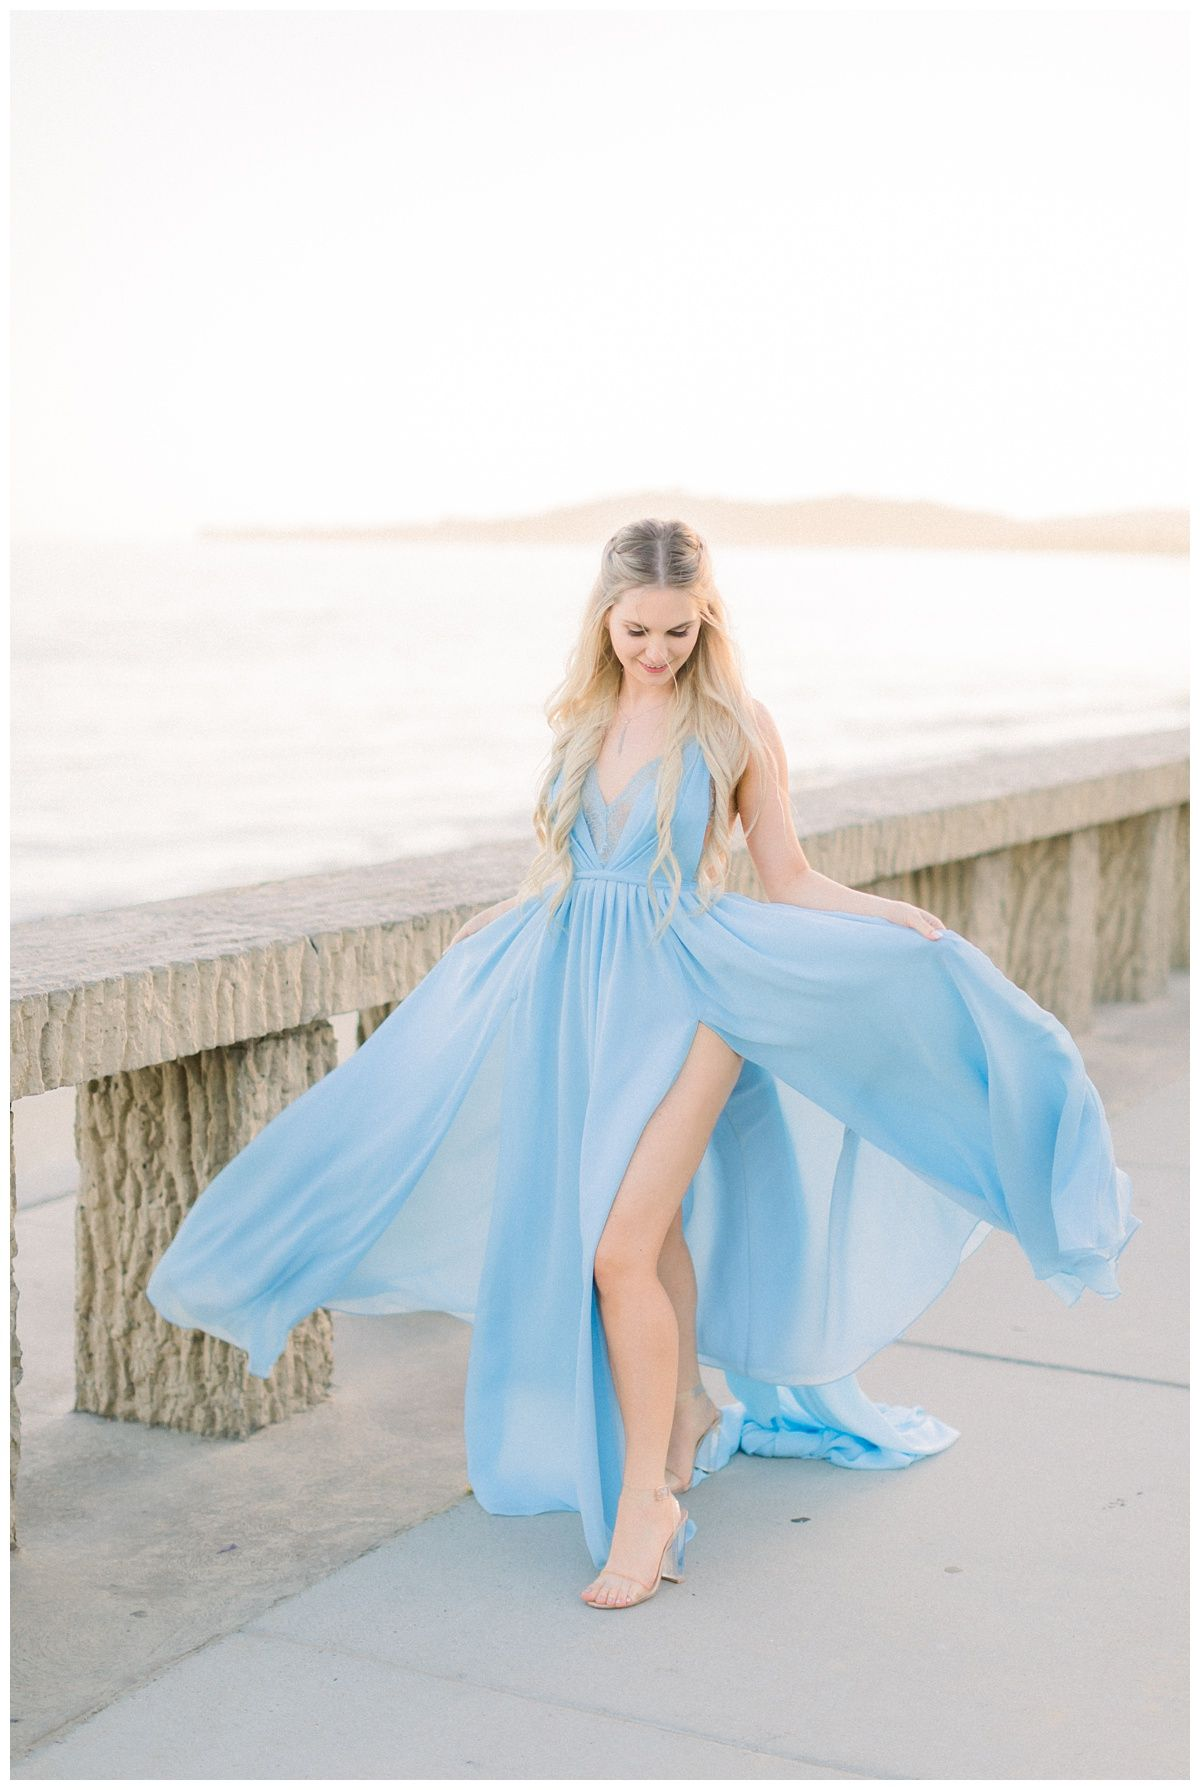 Dreamy Beach Engagement Session Dress In 2020 Flowy Dress Photography Photoshoot Dress Dresses